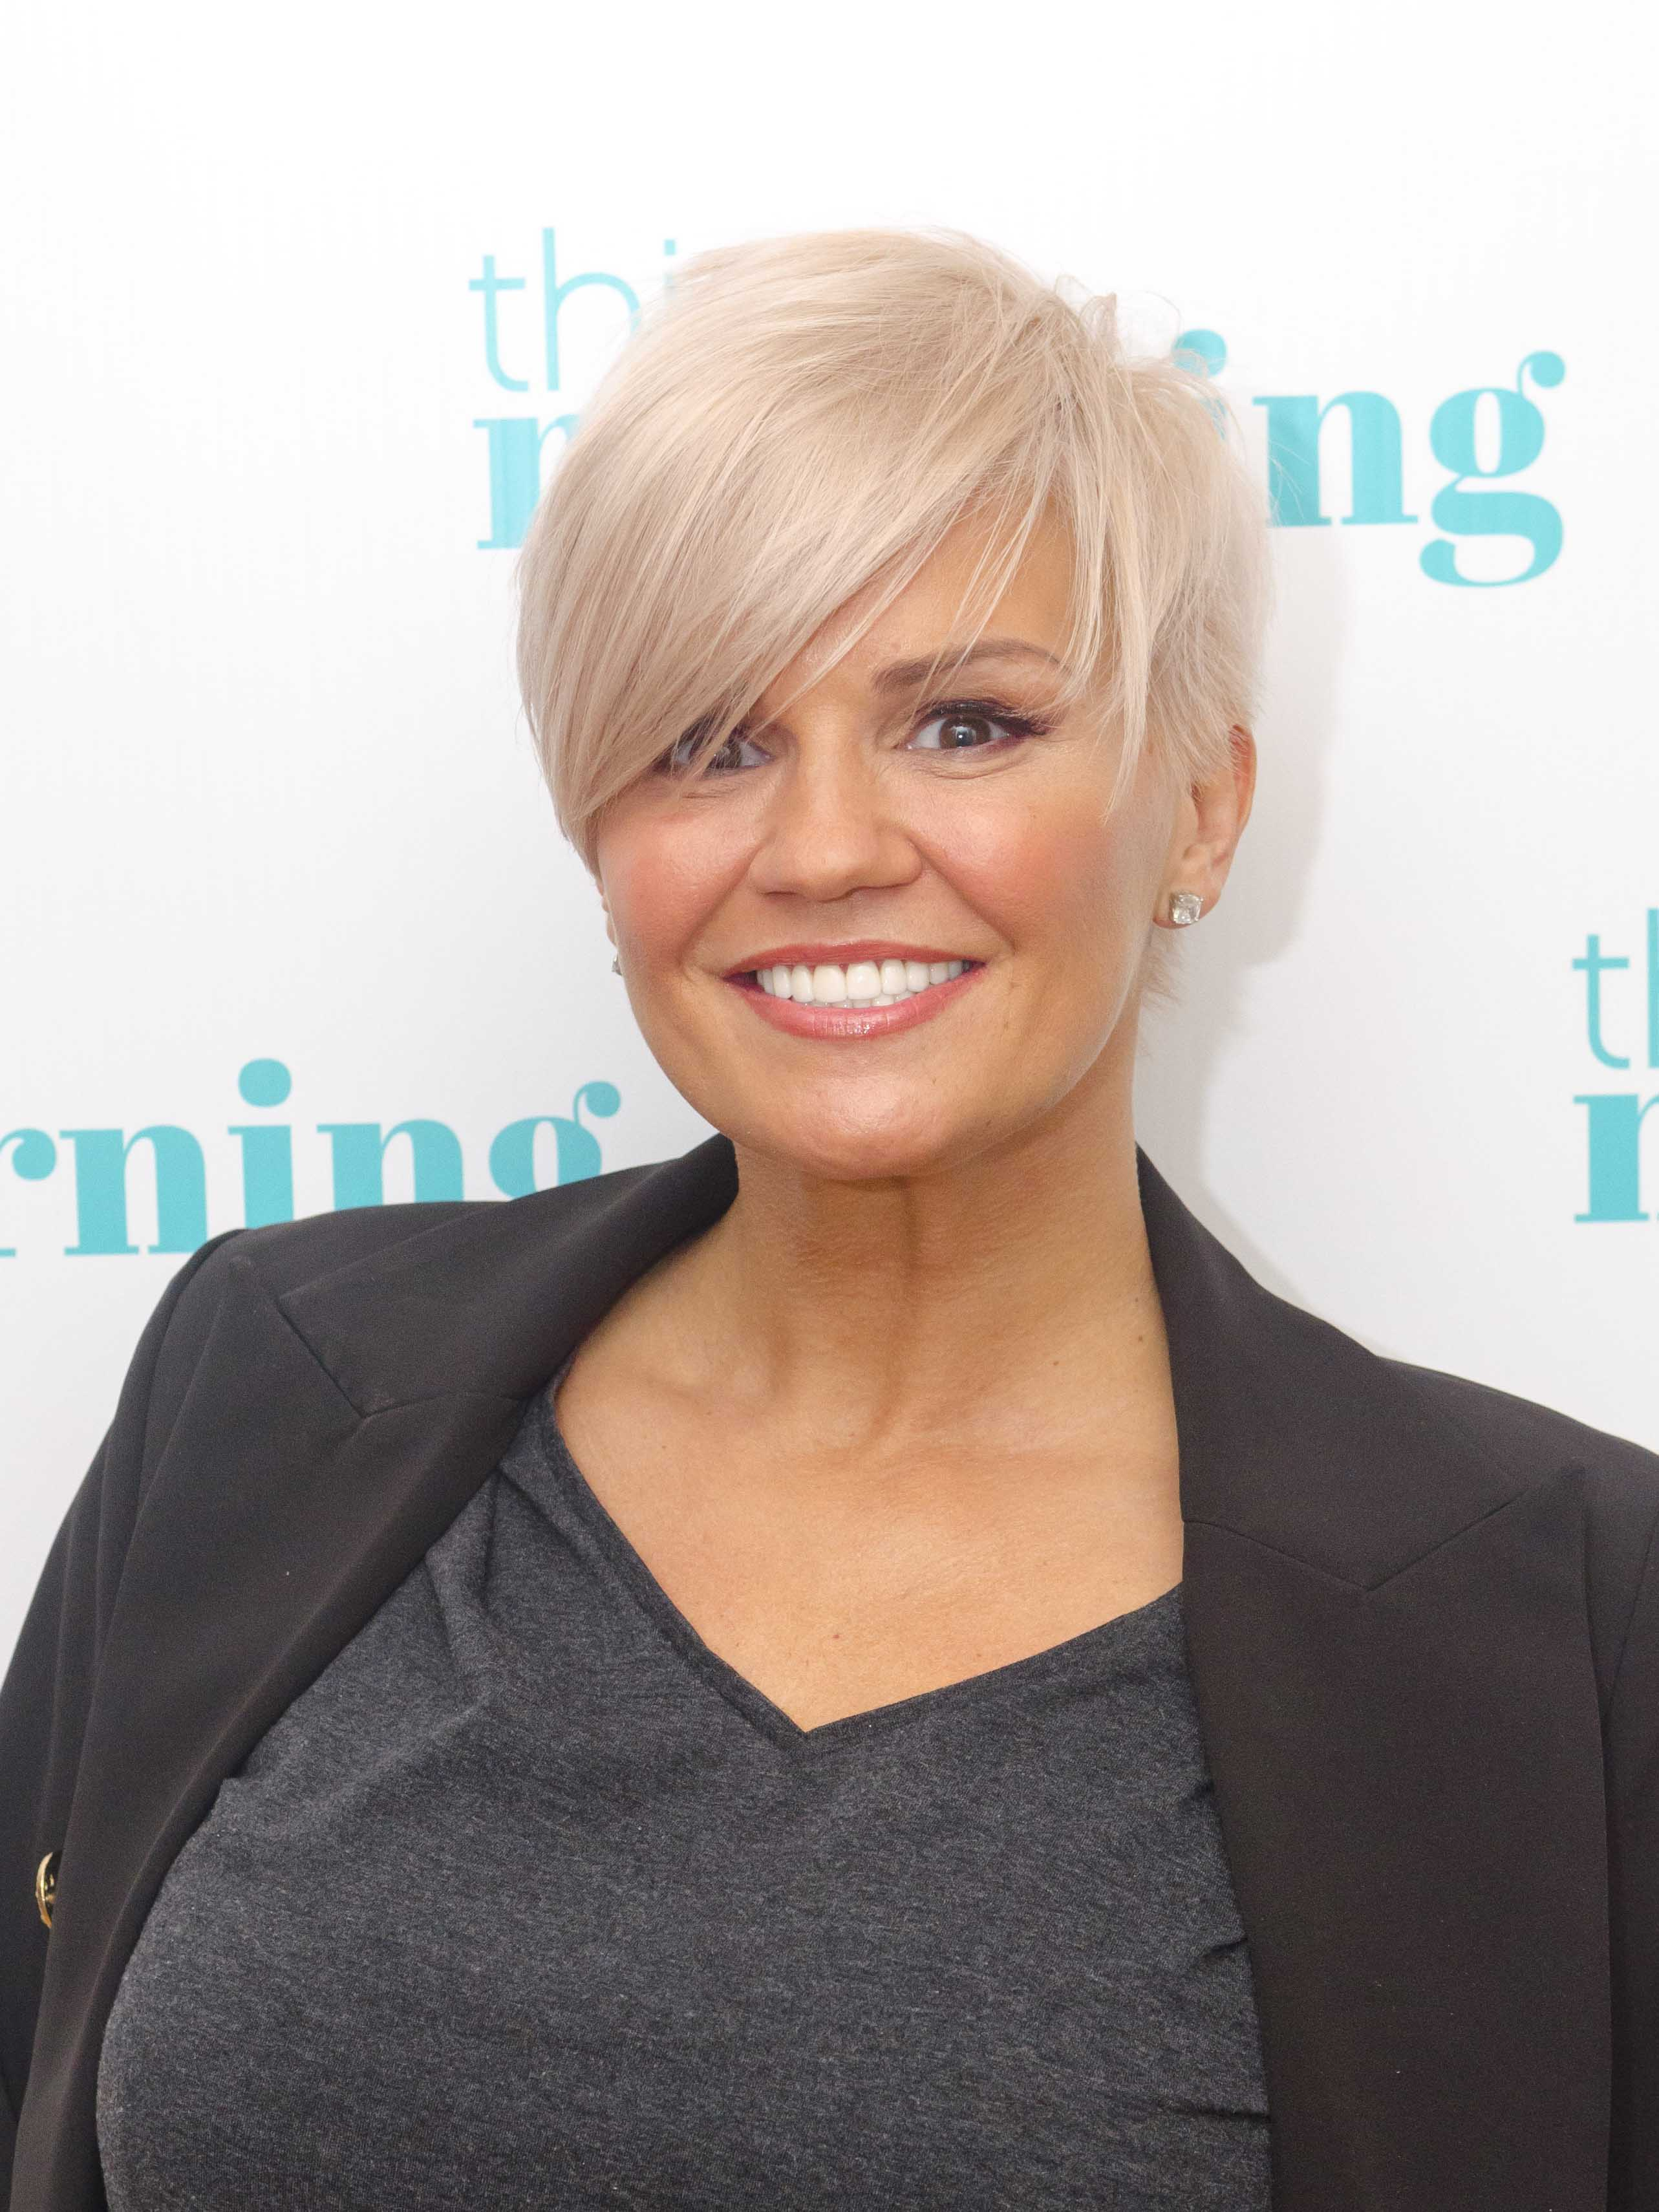 Kerry Katona Wows With Dramatic New Look After Fat Busting